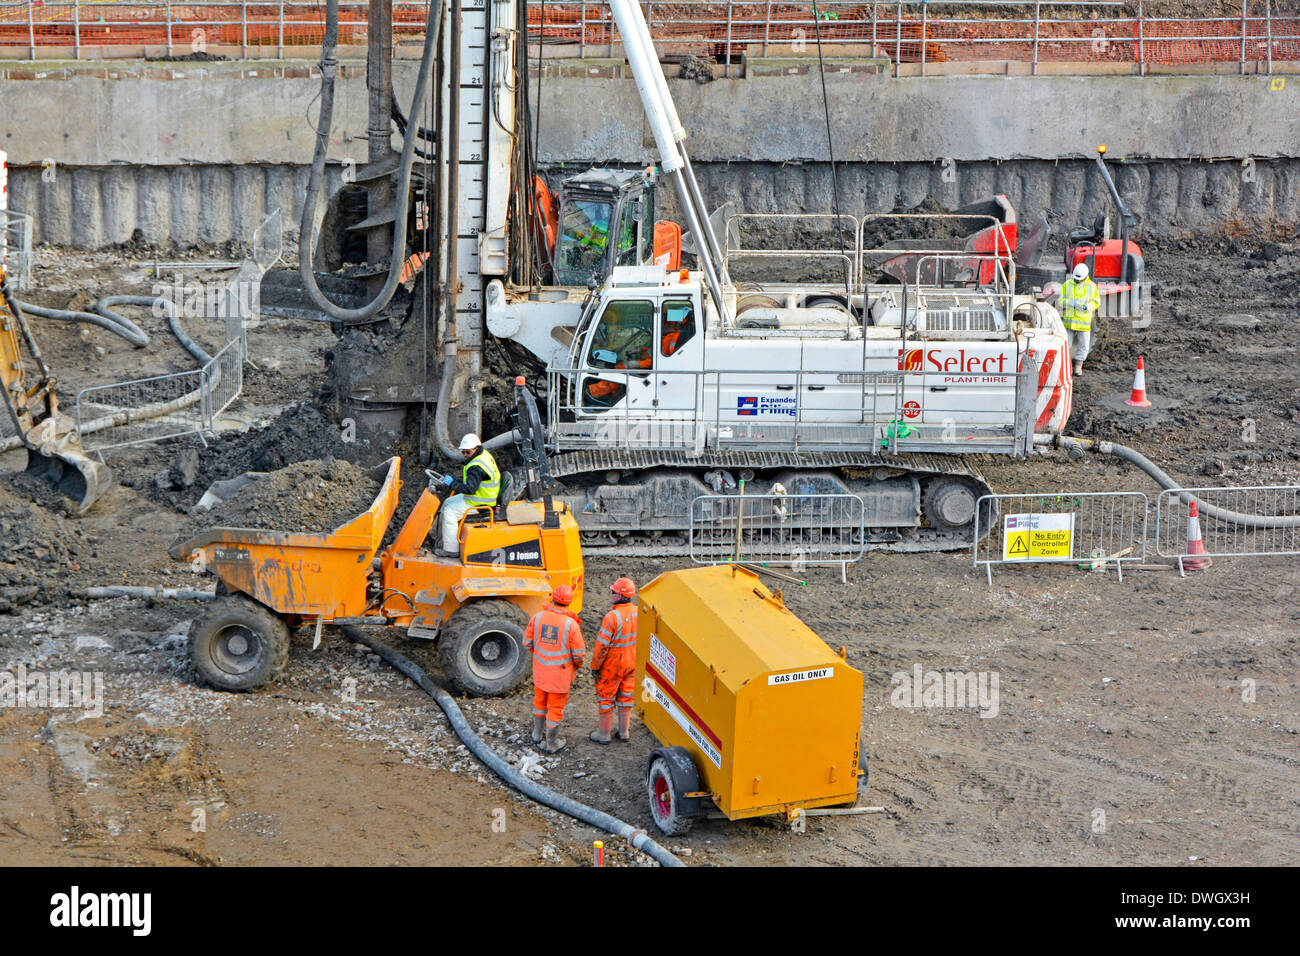 Foundation Piling Work Stock Photos & Foundation Piling Work Stock